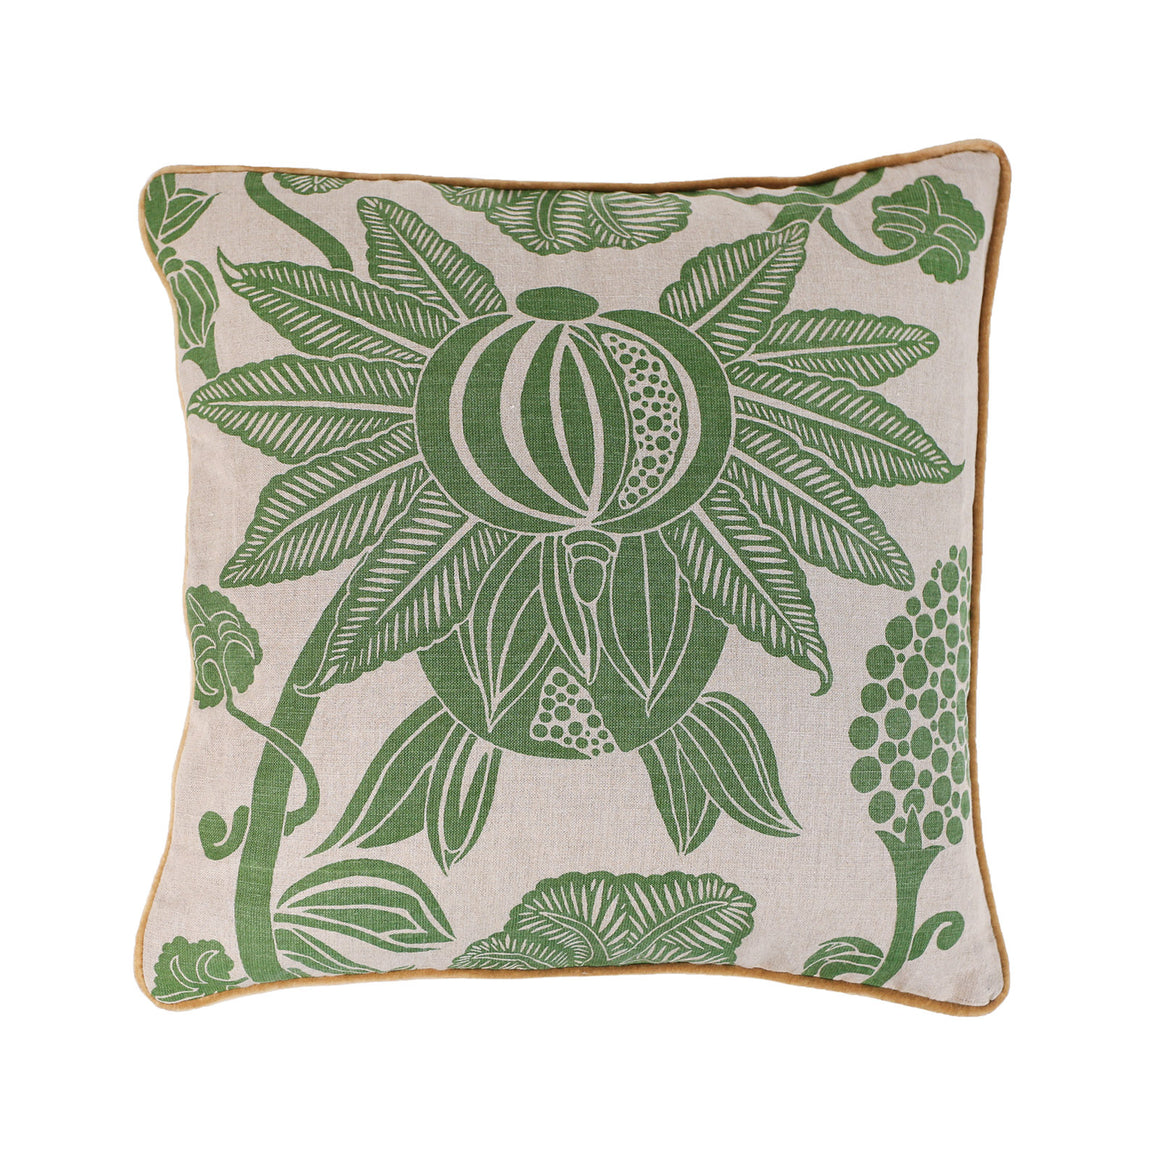 Pomegranate cushion cover - green